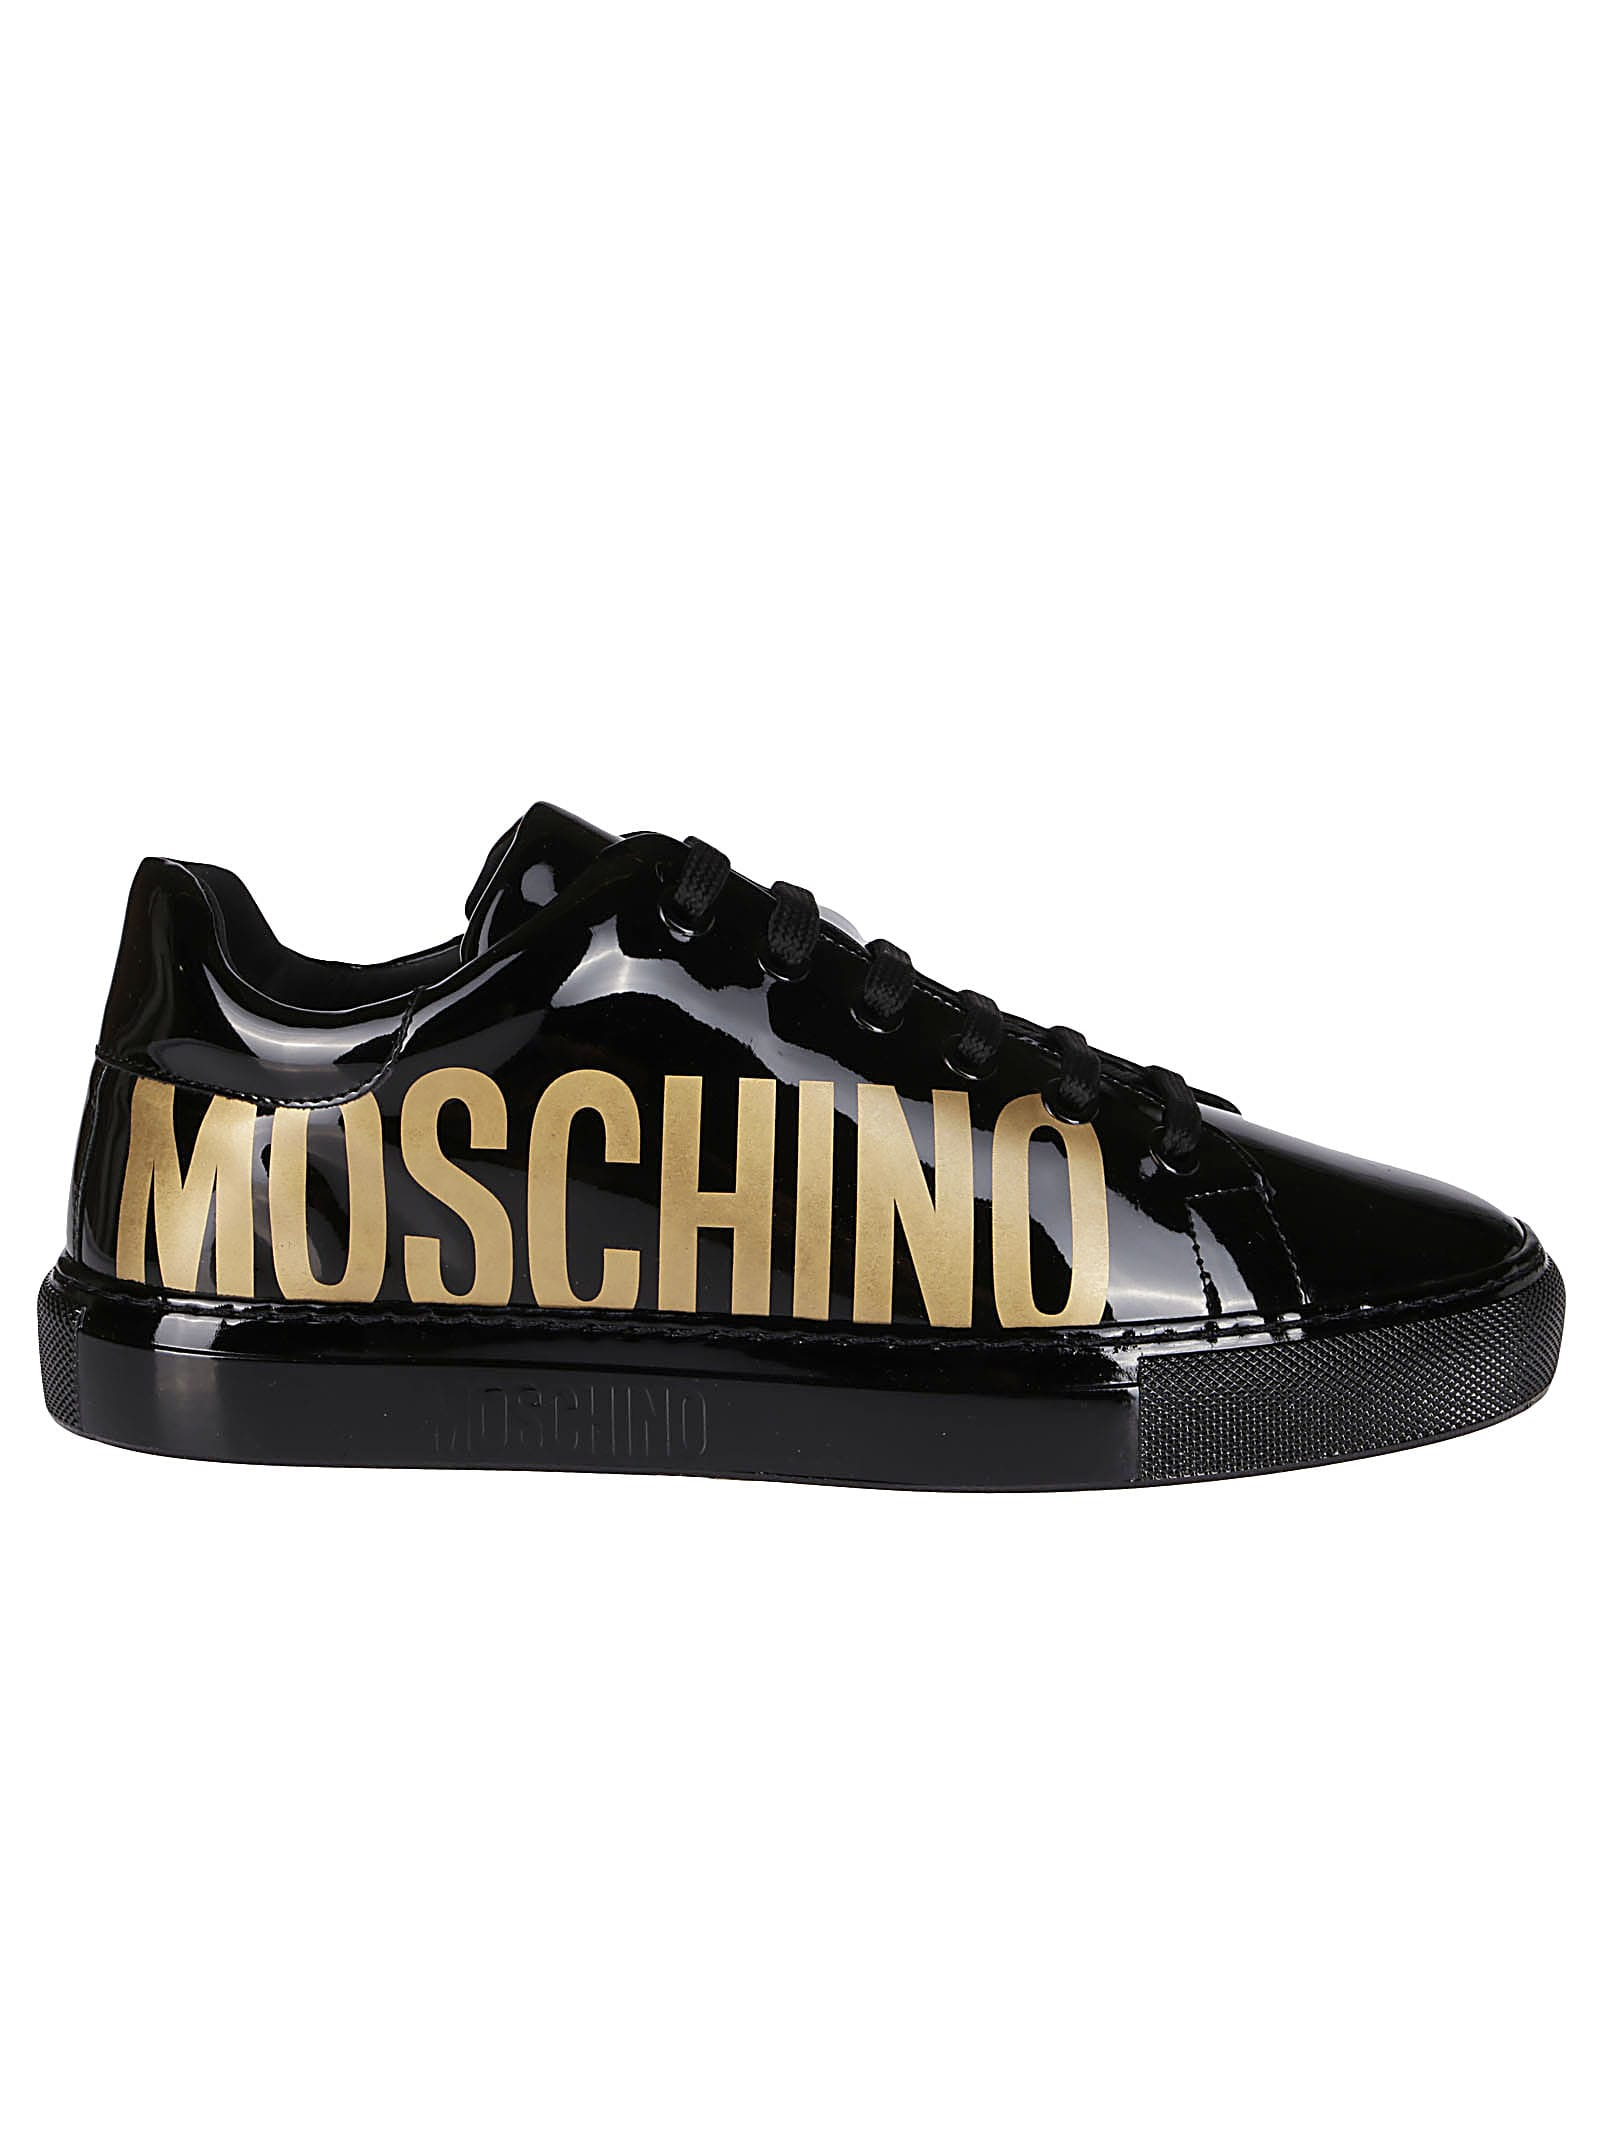 Moschino BLACK LEATHER SNEAKERS